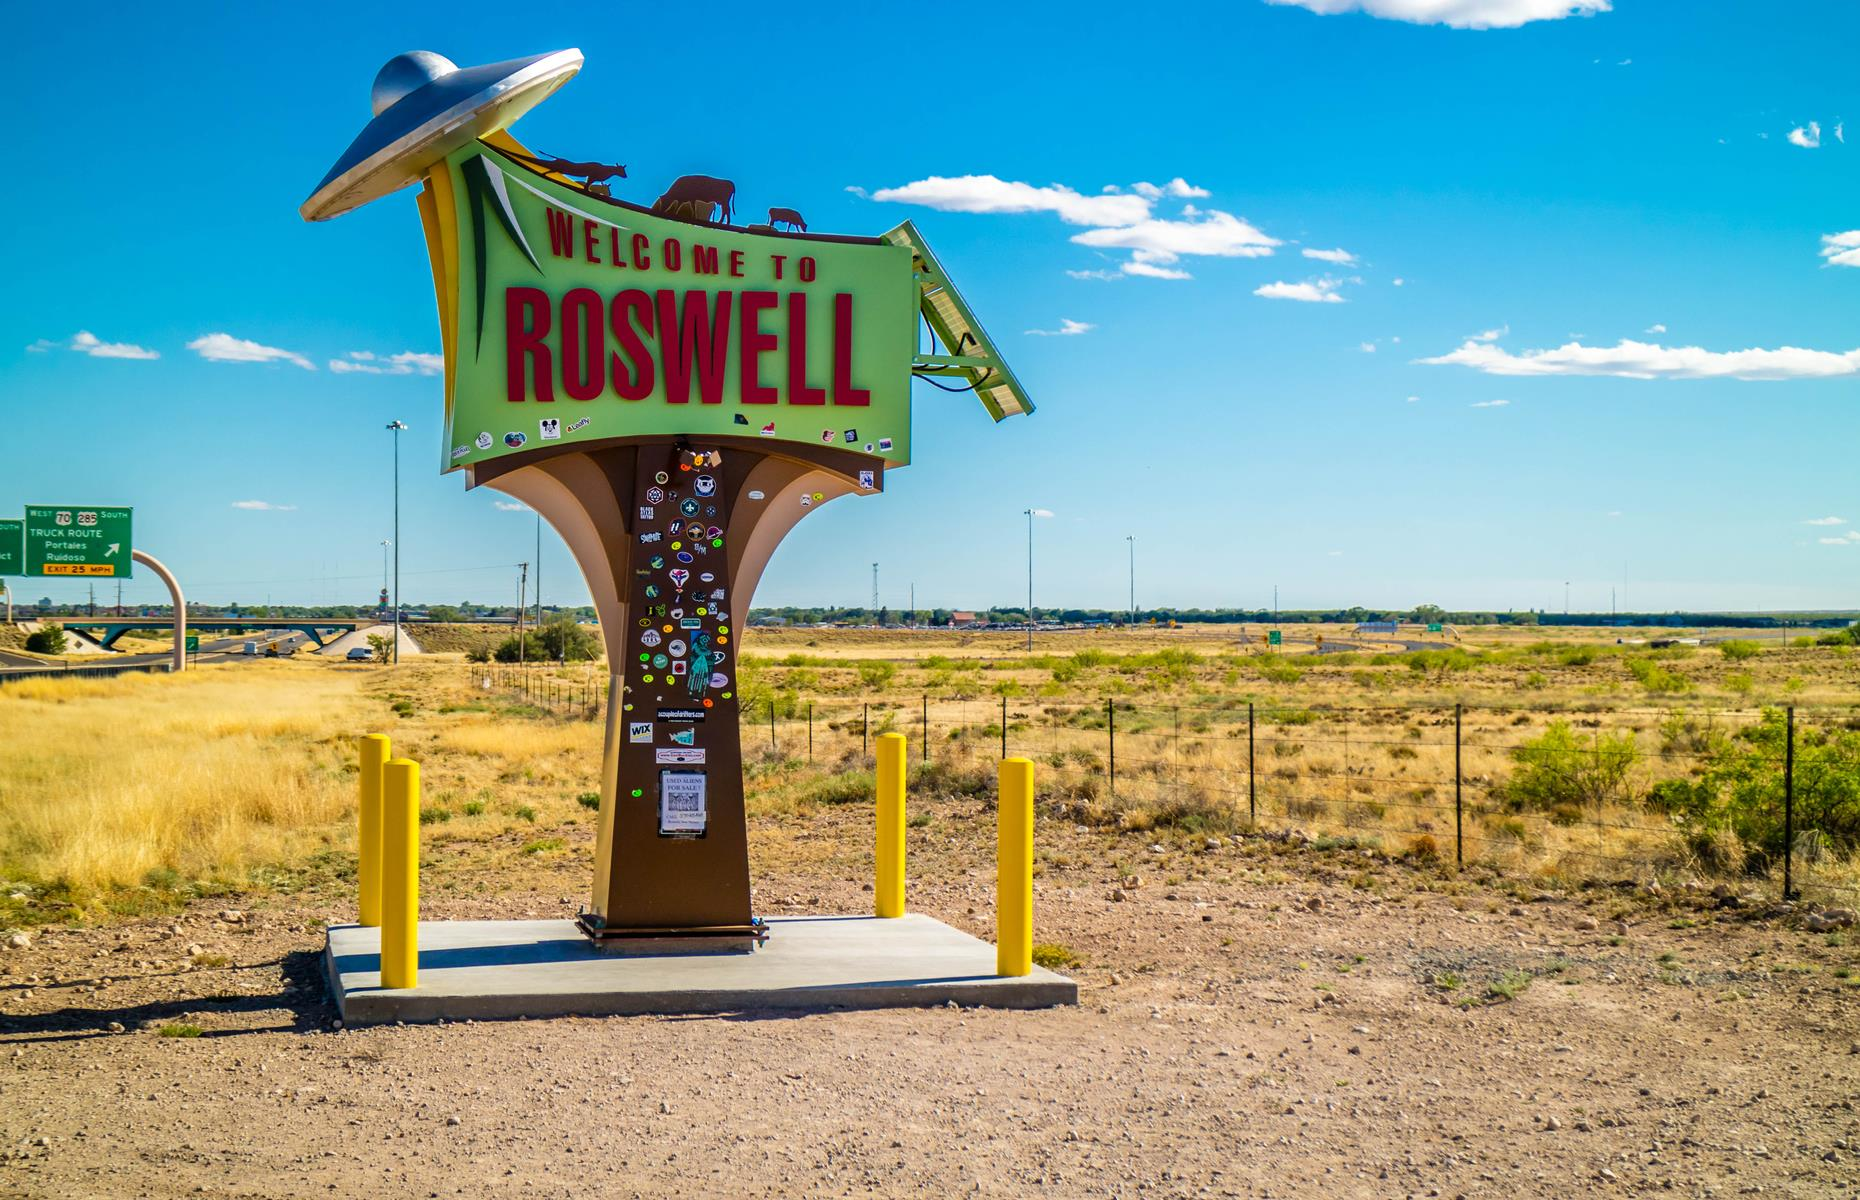 Slide 13 of 31: Roswell is perhaps the ultimate spot for alien conspiracy theories. The small New Mexico city hit headlines when, in 1947, a ranch worker claimed to have stumbled upon debris from a flying saucer crash. It was quickly explained as a weather balloon that crashed, although the rumors never died. Discover the most magical places on Earth here.